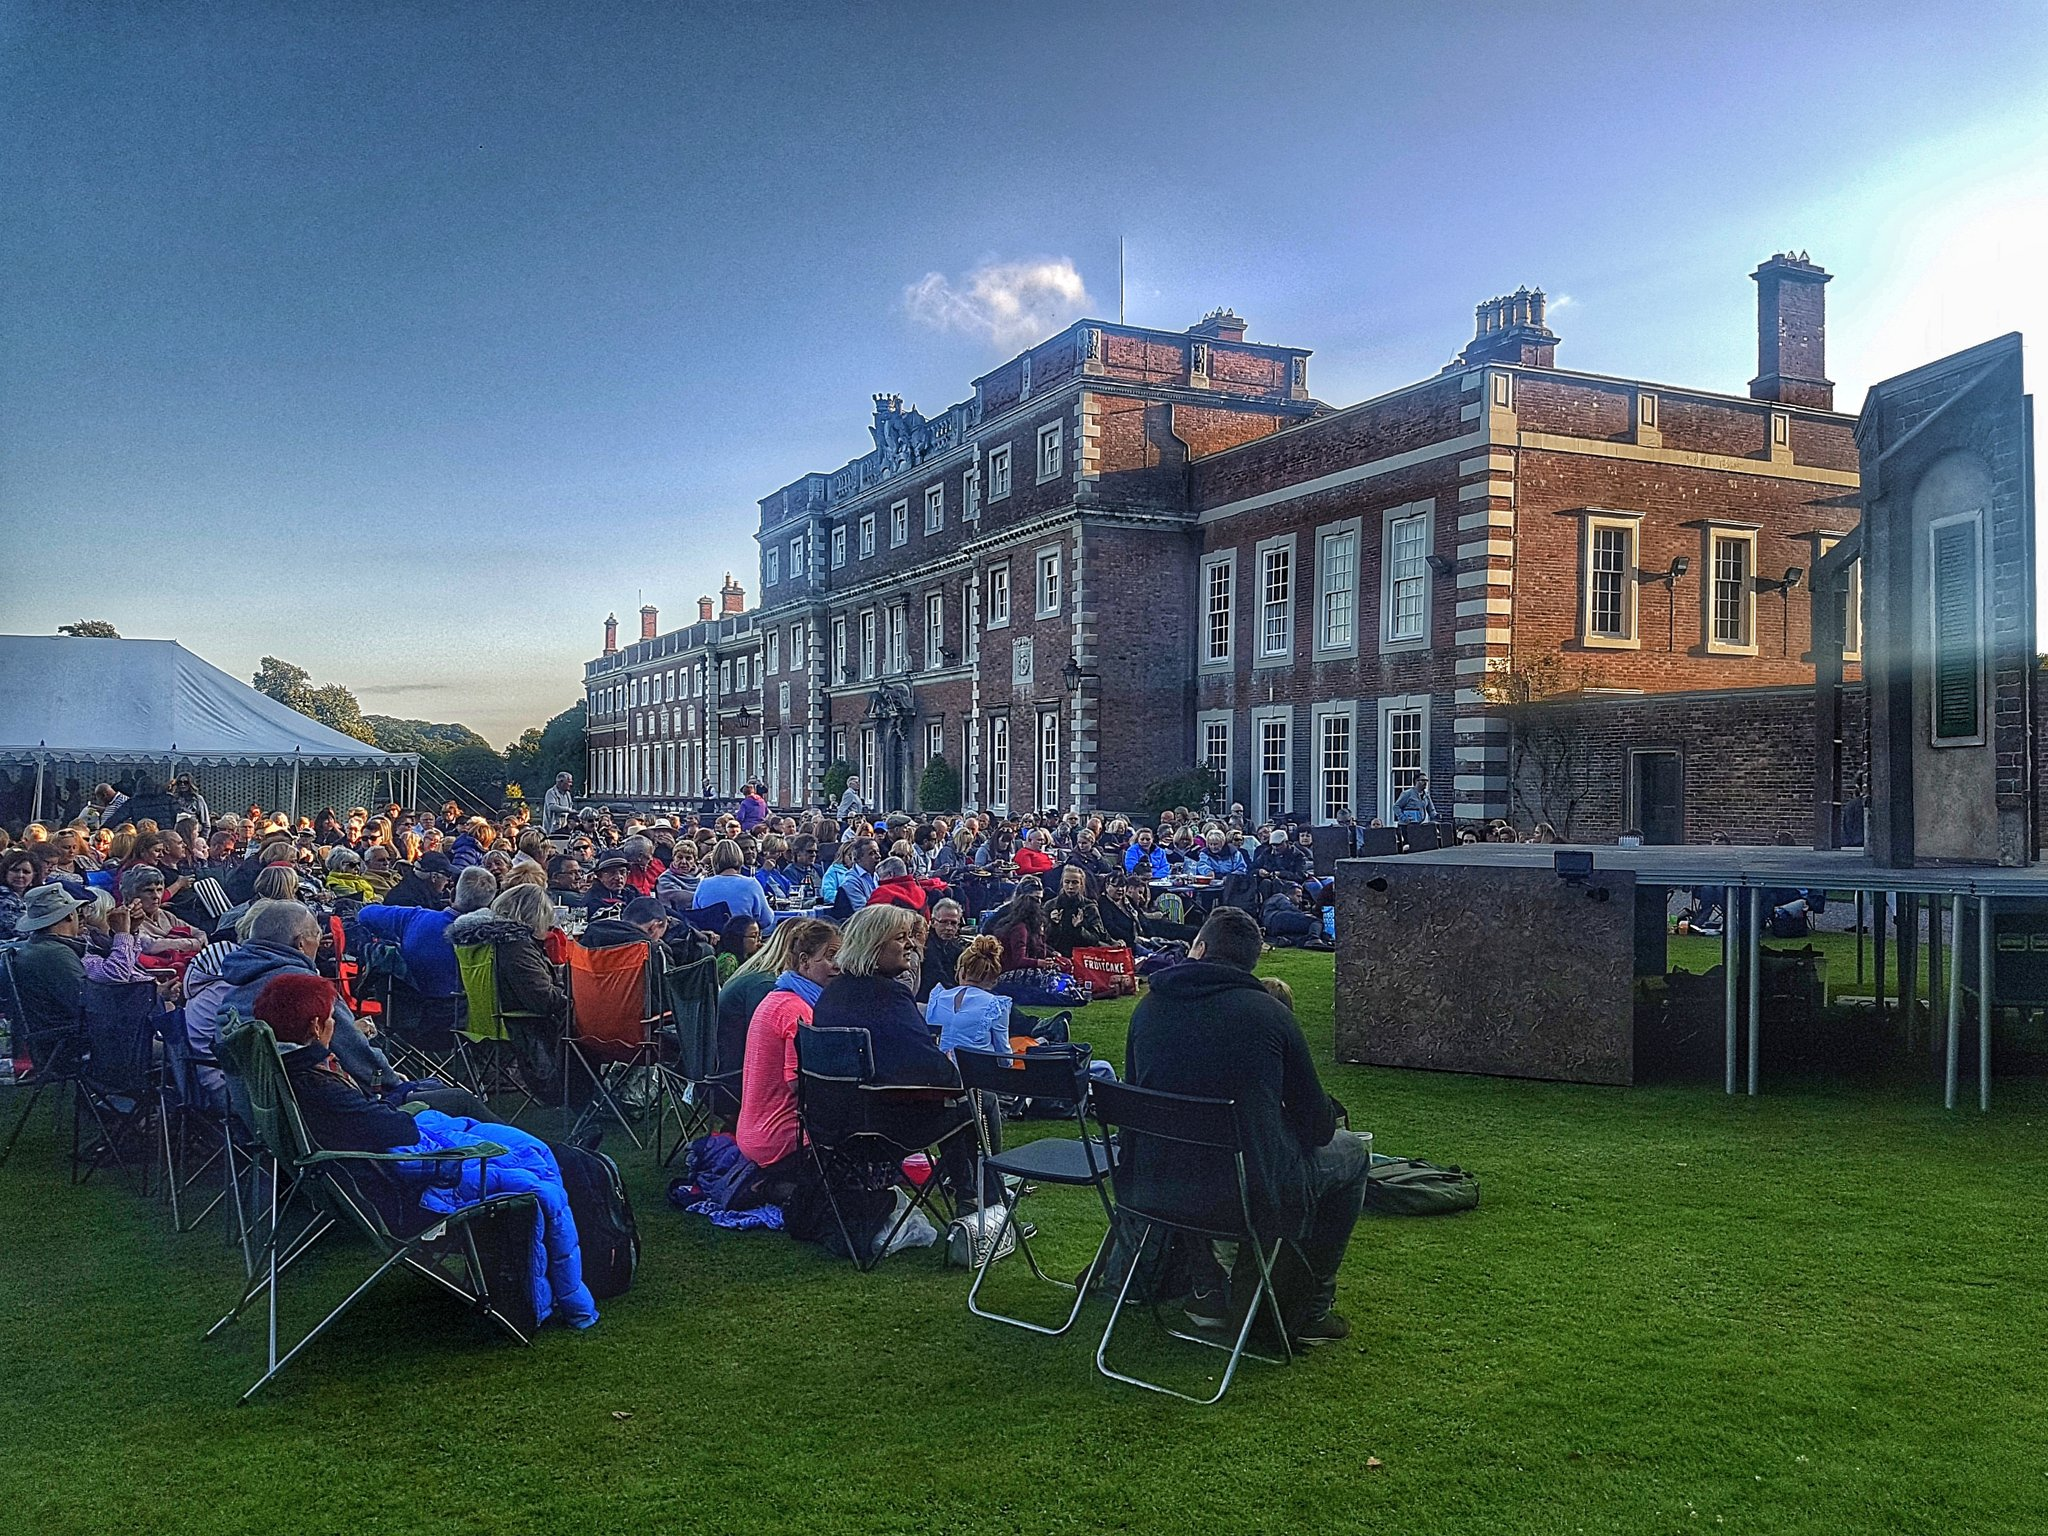 Knowsley Hall looking great tonight with a performance of The Comedy of Errors. https://t.co/NRCGJRvSHD